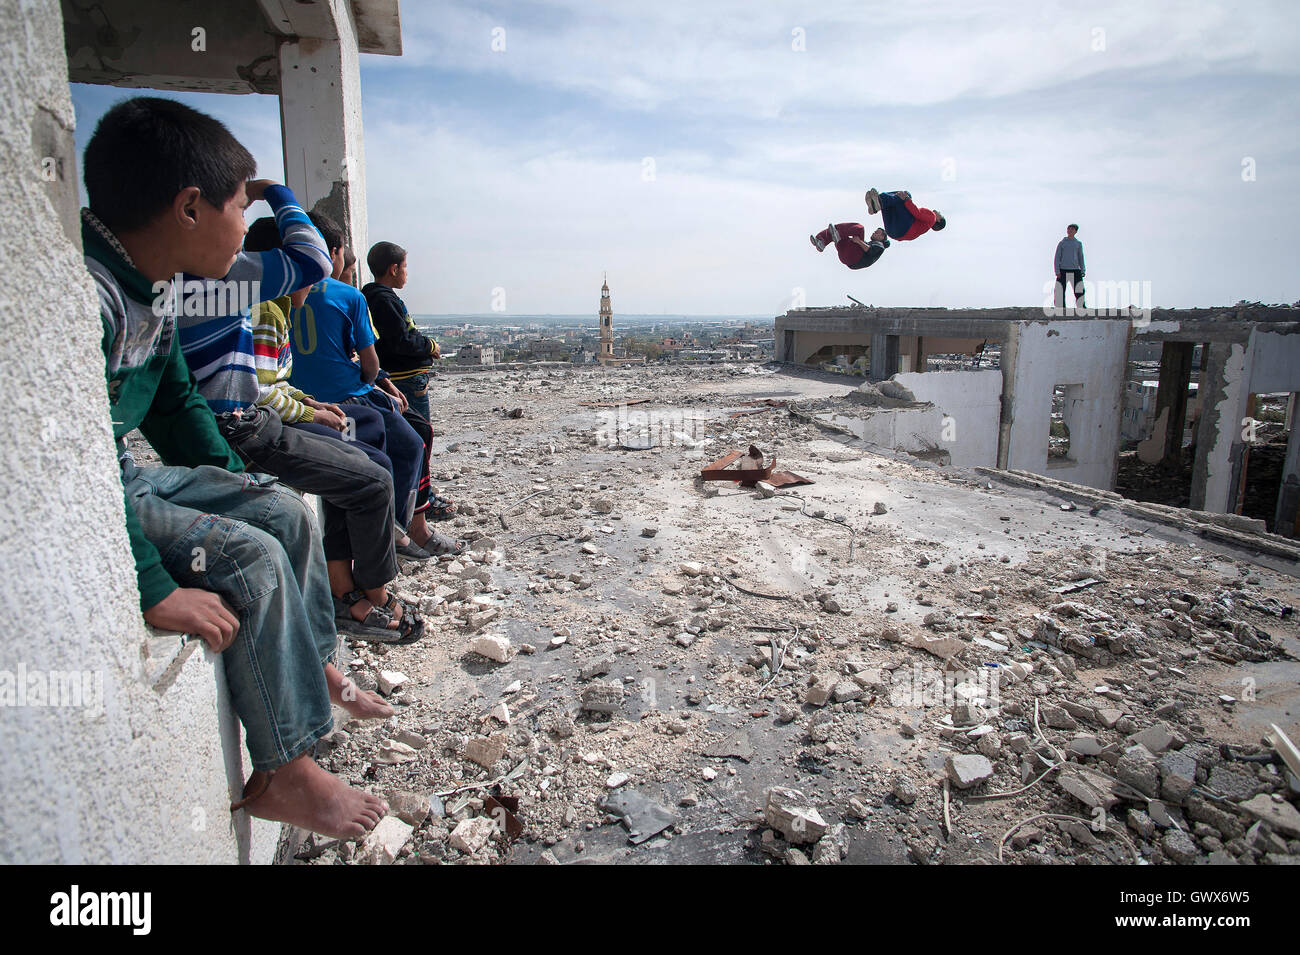 '3 Run Gaza' at the bombed out remains of a flat complex destroyed in 2014 during Israel's 'Operation - Stock Image